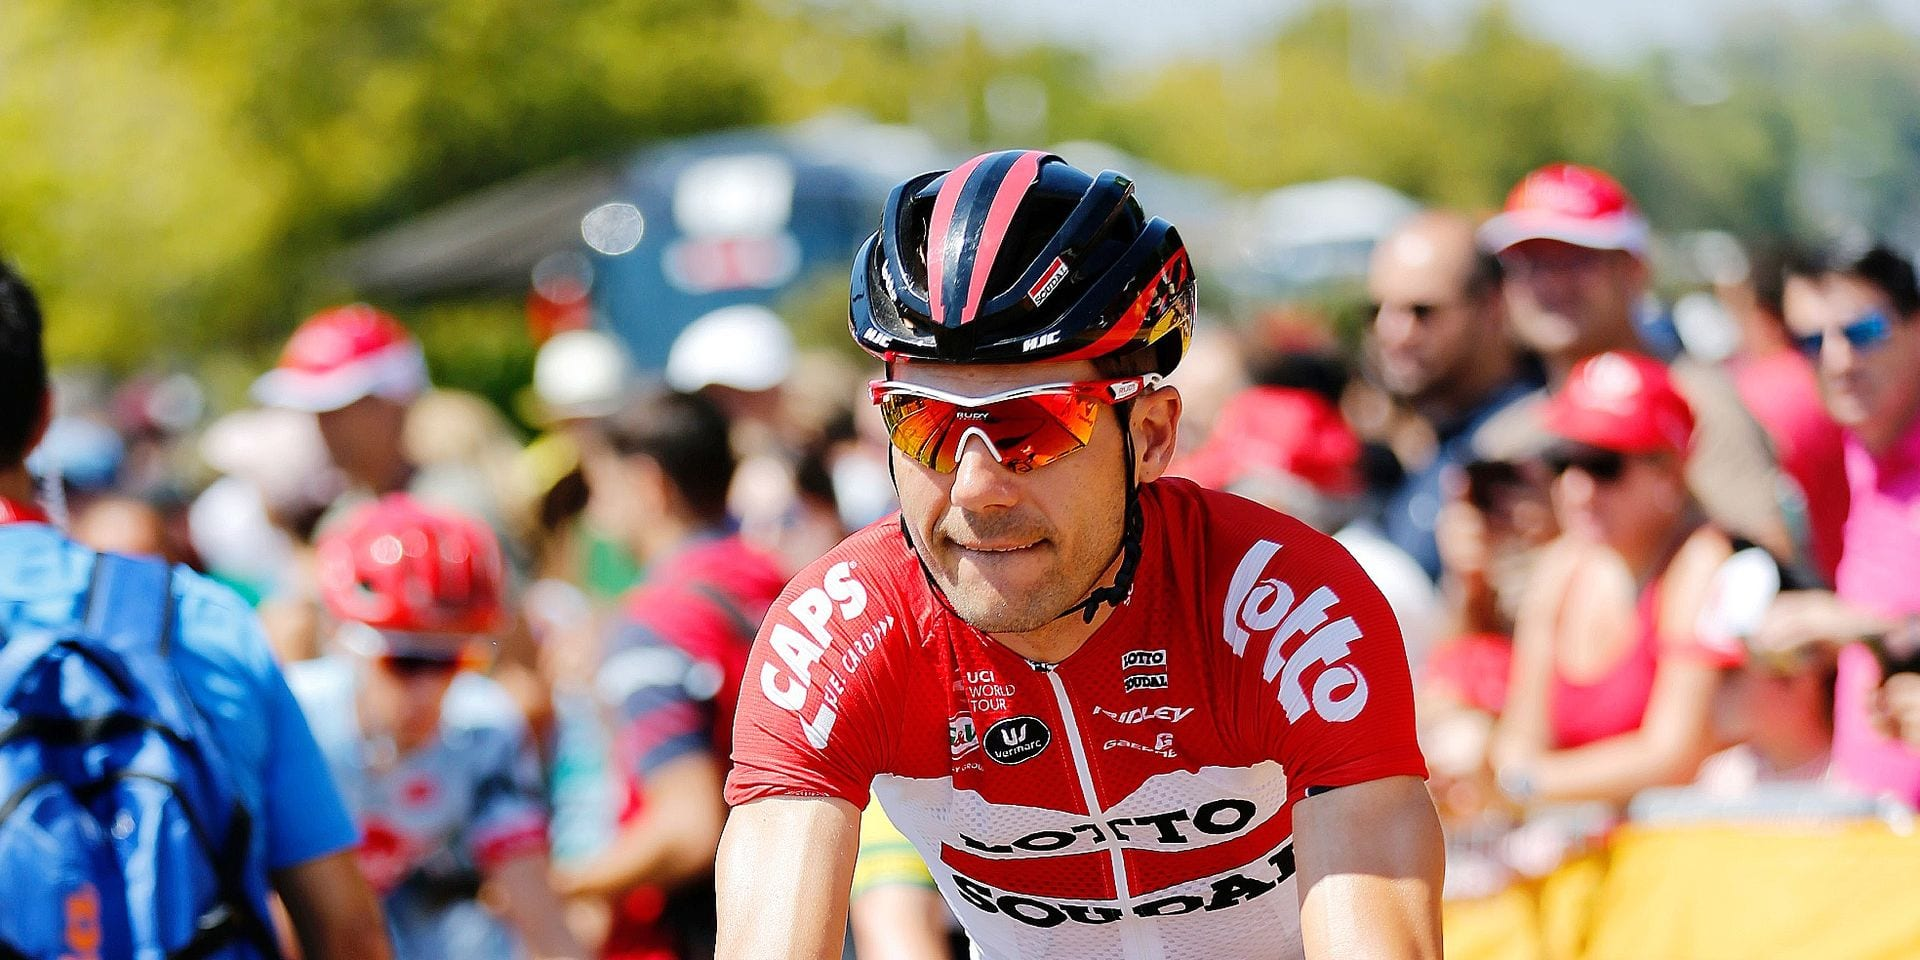 Belgian Maxime Monfort of Lotto Soudal pictured at the second stage of the Vuelta, Tour of Spain cycling race, a 163,5 km from Marbella to Caminito del Rey, Spain, Sunday 26 August 2018. BELGA PHOTO YUZURU SUNADA